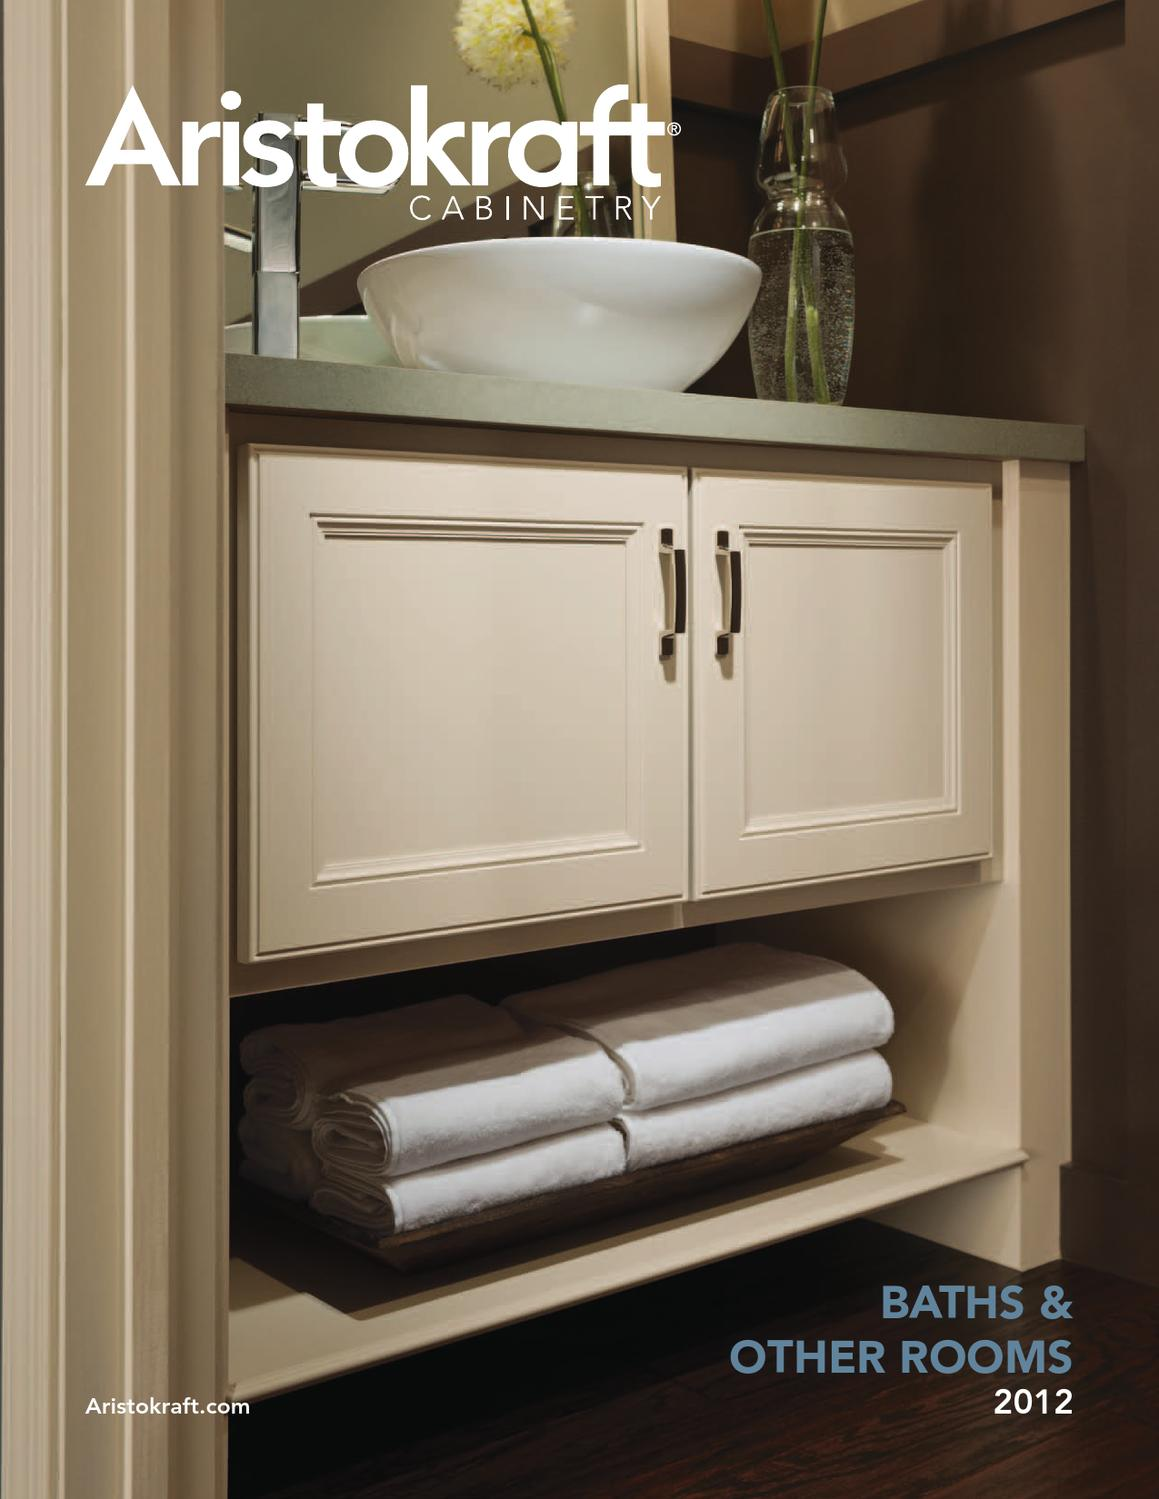 Aristokraft Cabinetry Bath And Other Rooms By Horner Millwork Issuu